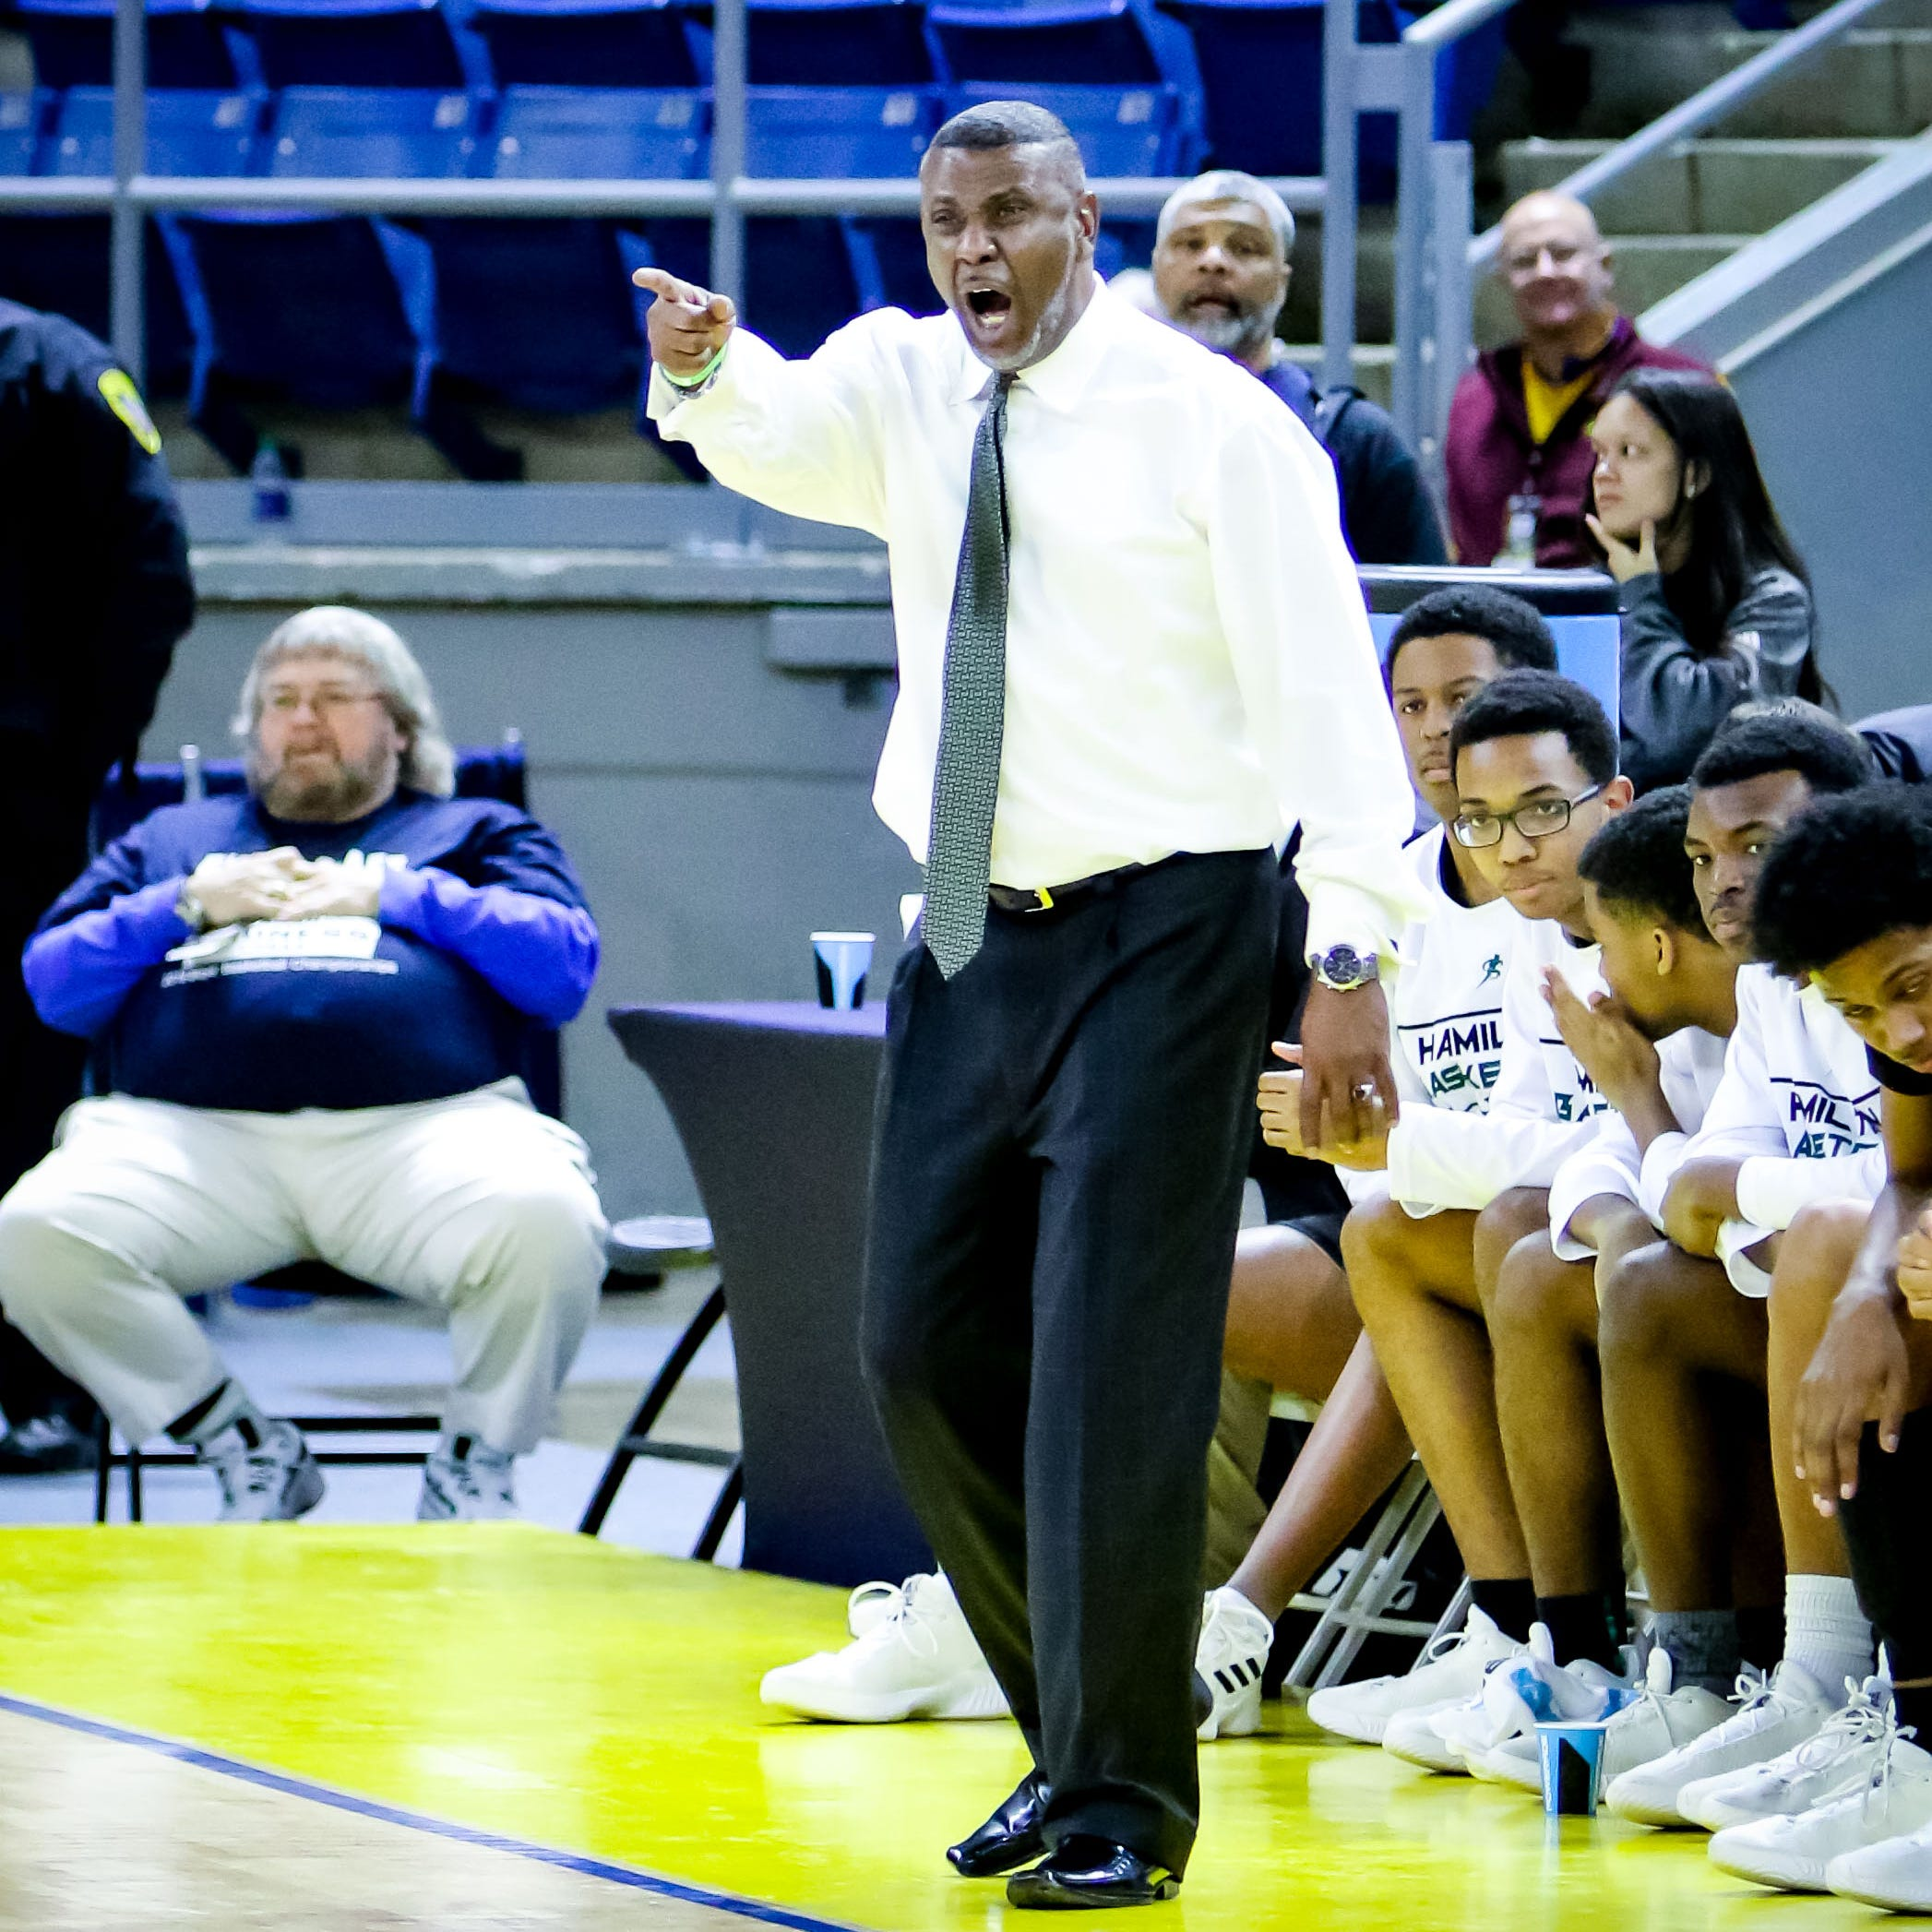 Hamilton Christian coach has strong ties to St. Landry Parish and LCA coach